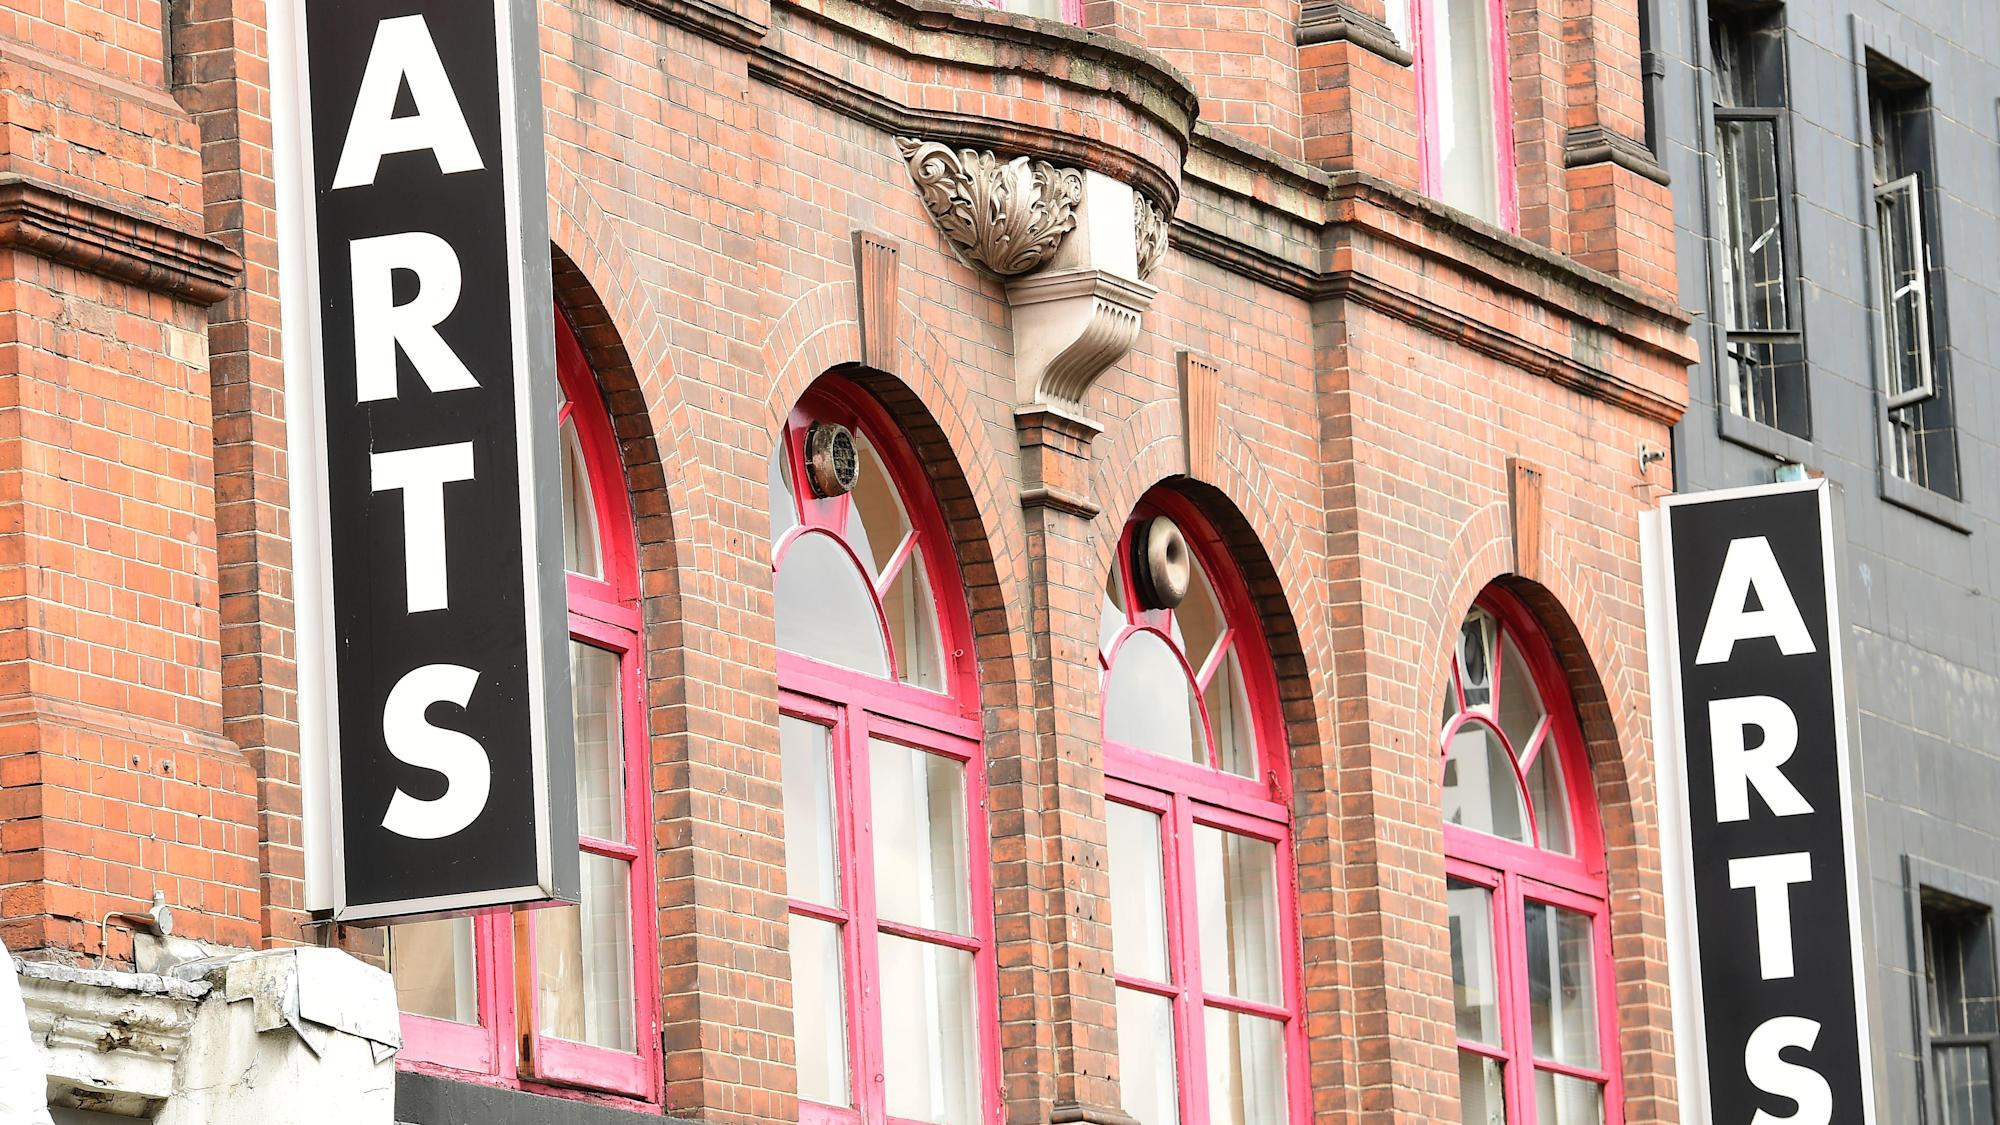 Arts charity allocates £400,000 in grants to support creative freelancers